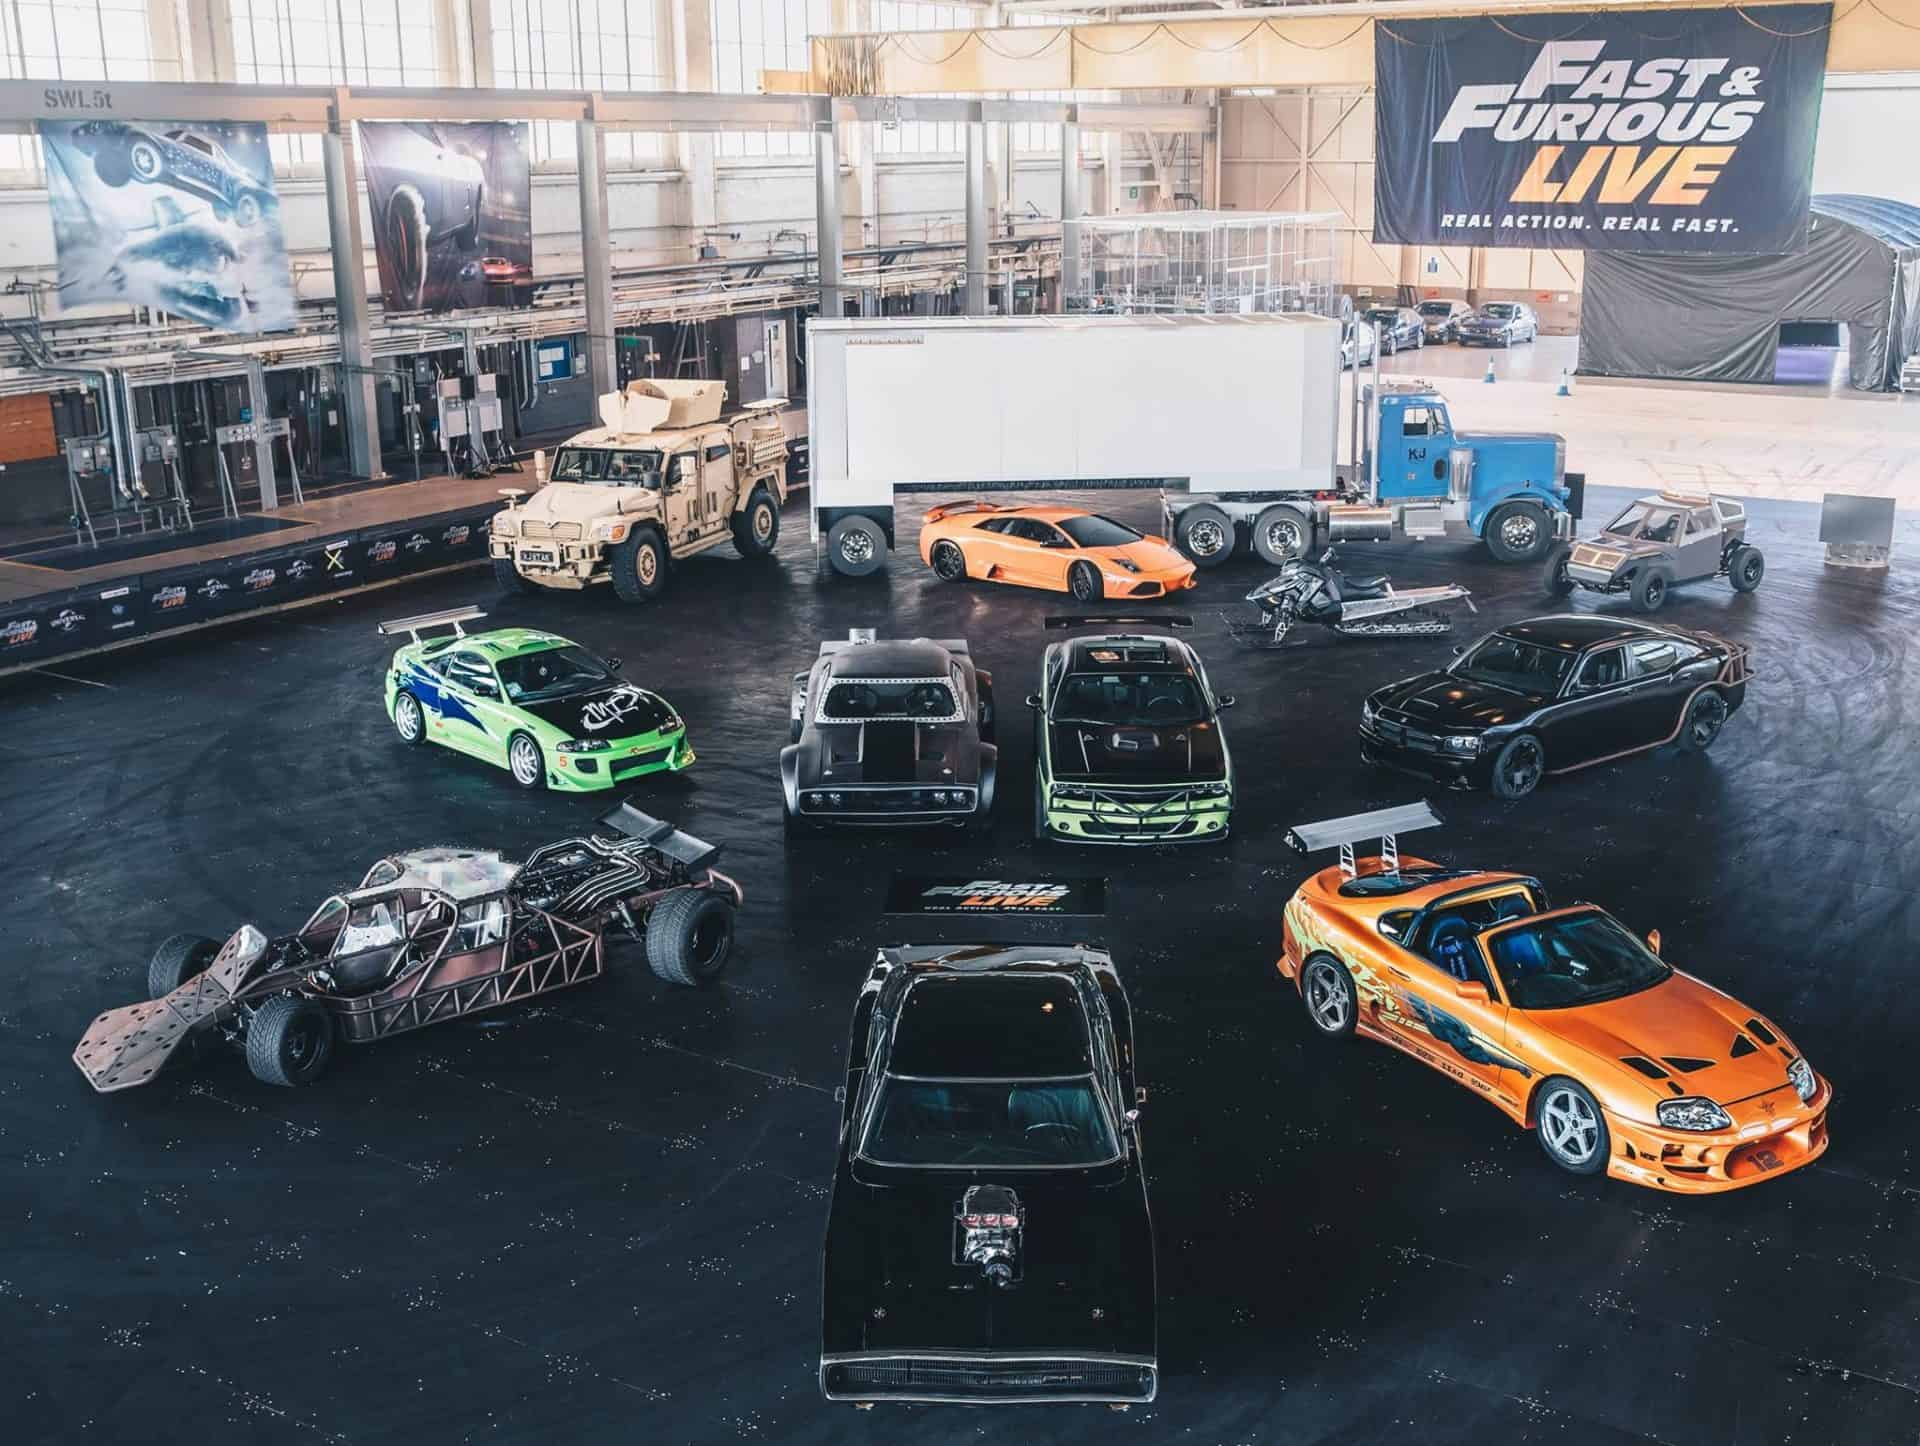 Fast & Furious Live collection